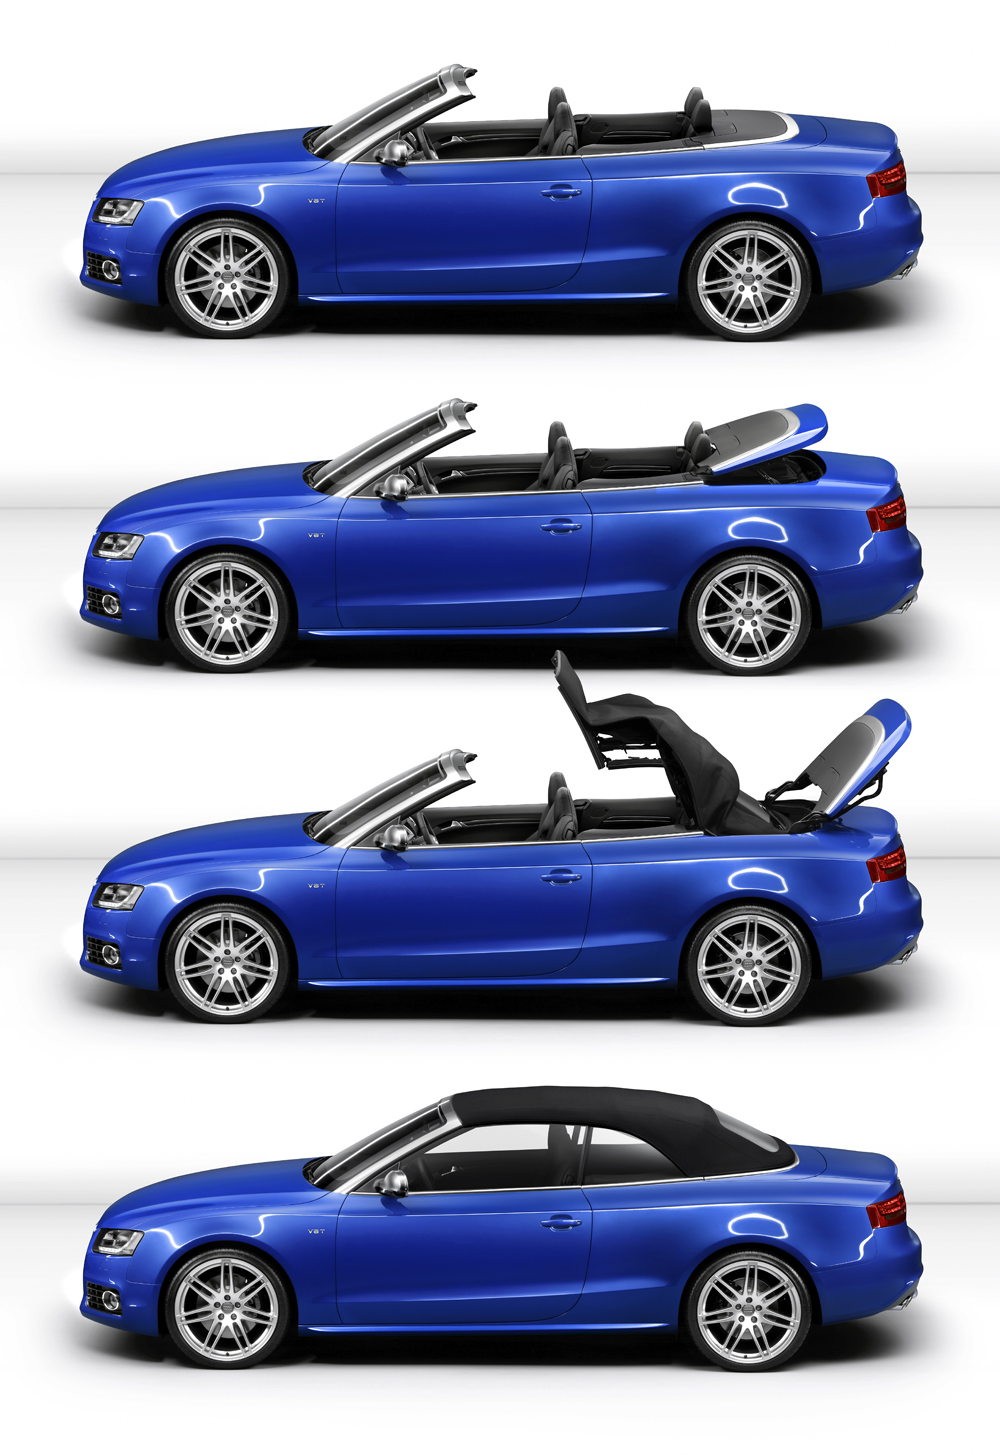 Audi A5 & S5 Cabriolet U.S. debut at New York Auto Show ...